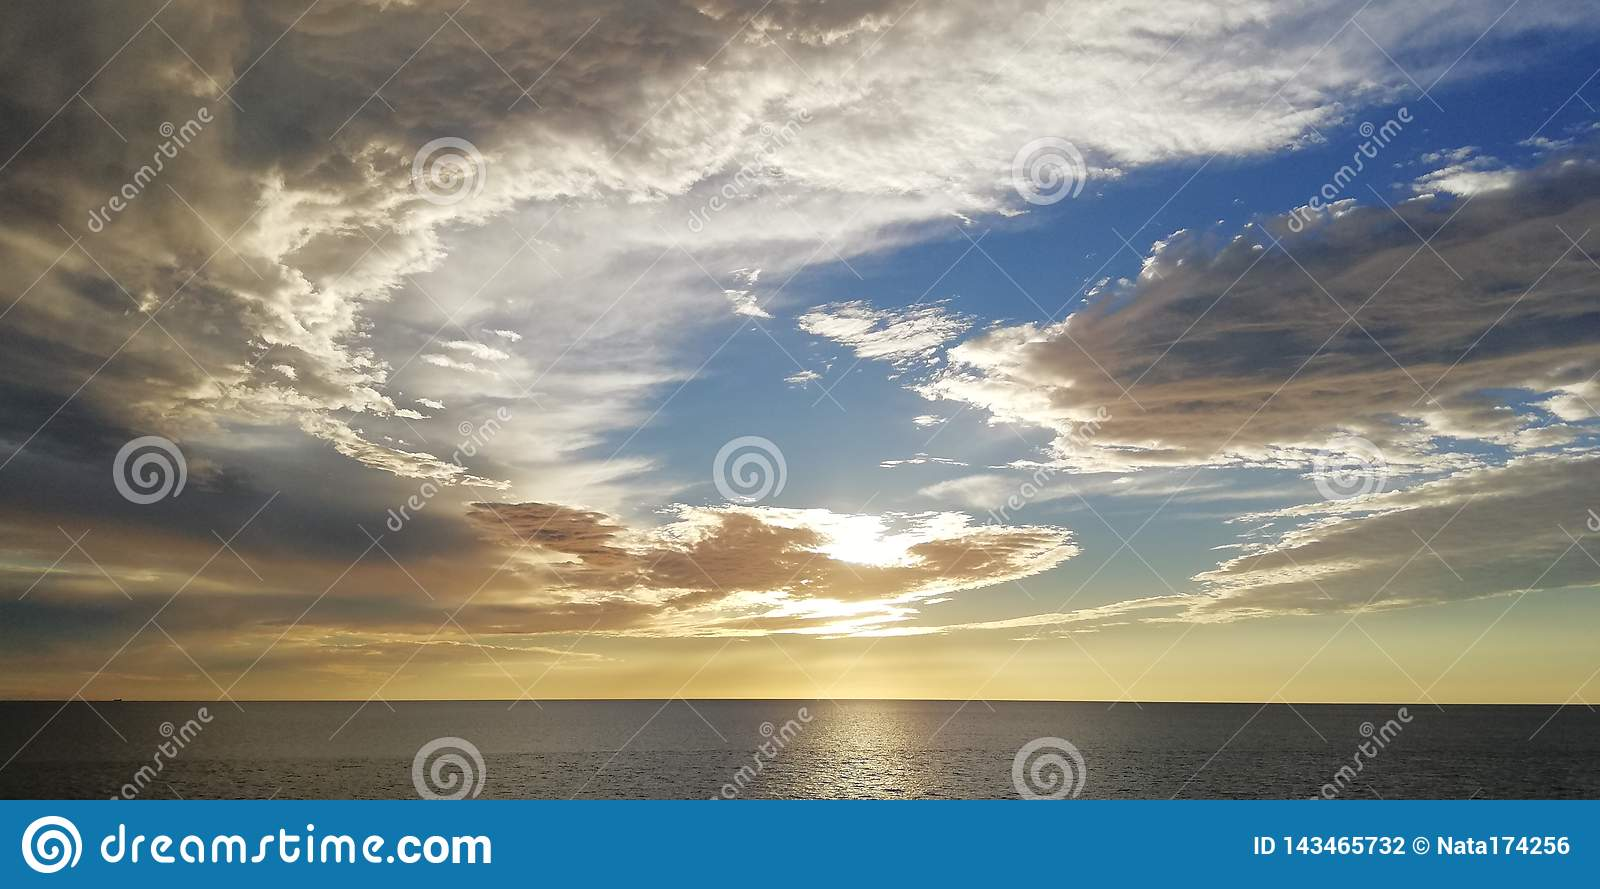 Seascape. Unusual clouds at sunset